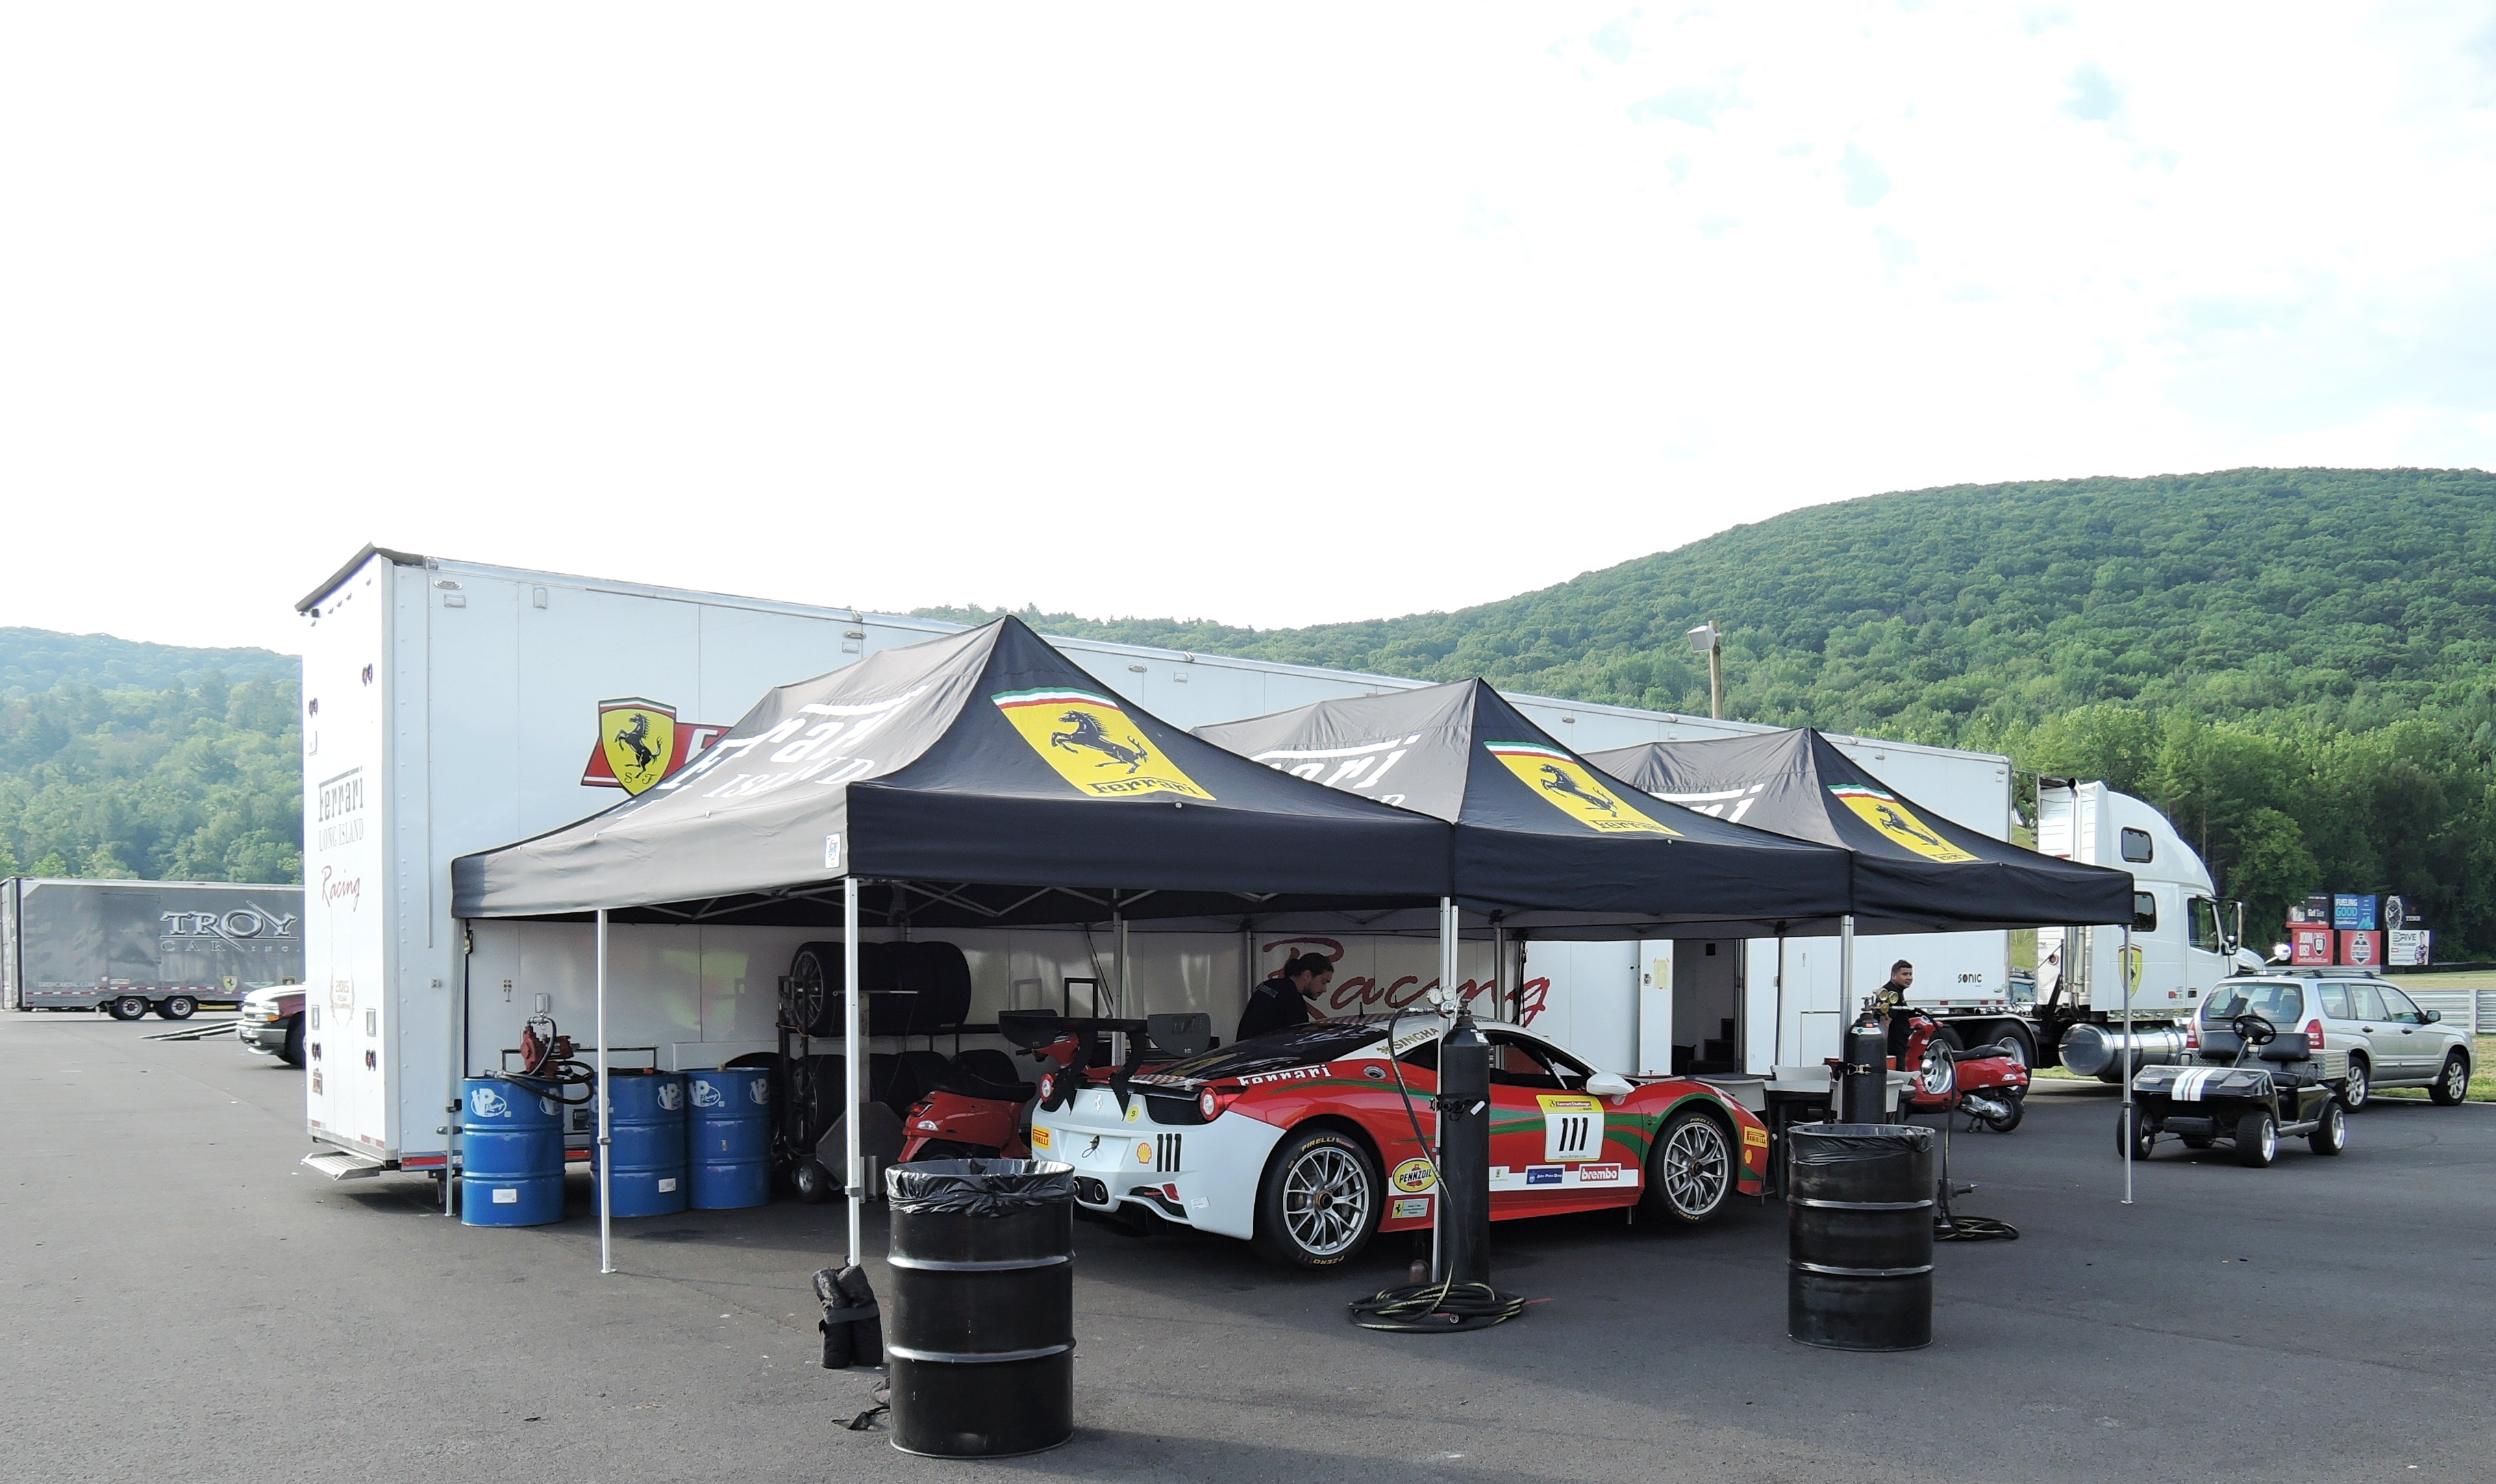 Ferrari 458 Challenge car - ferraris at lime rock